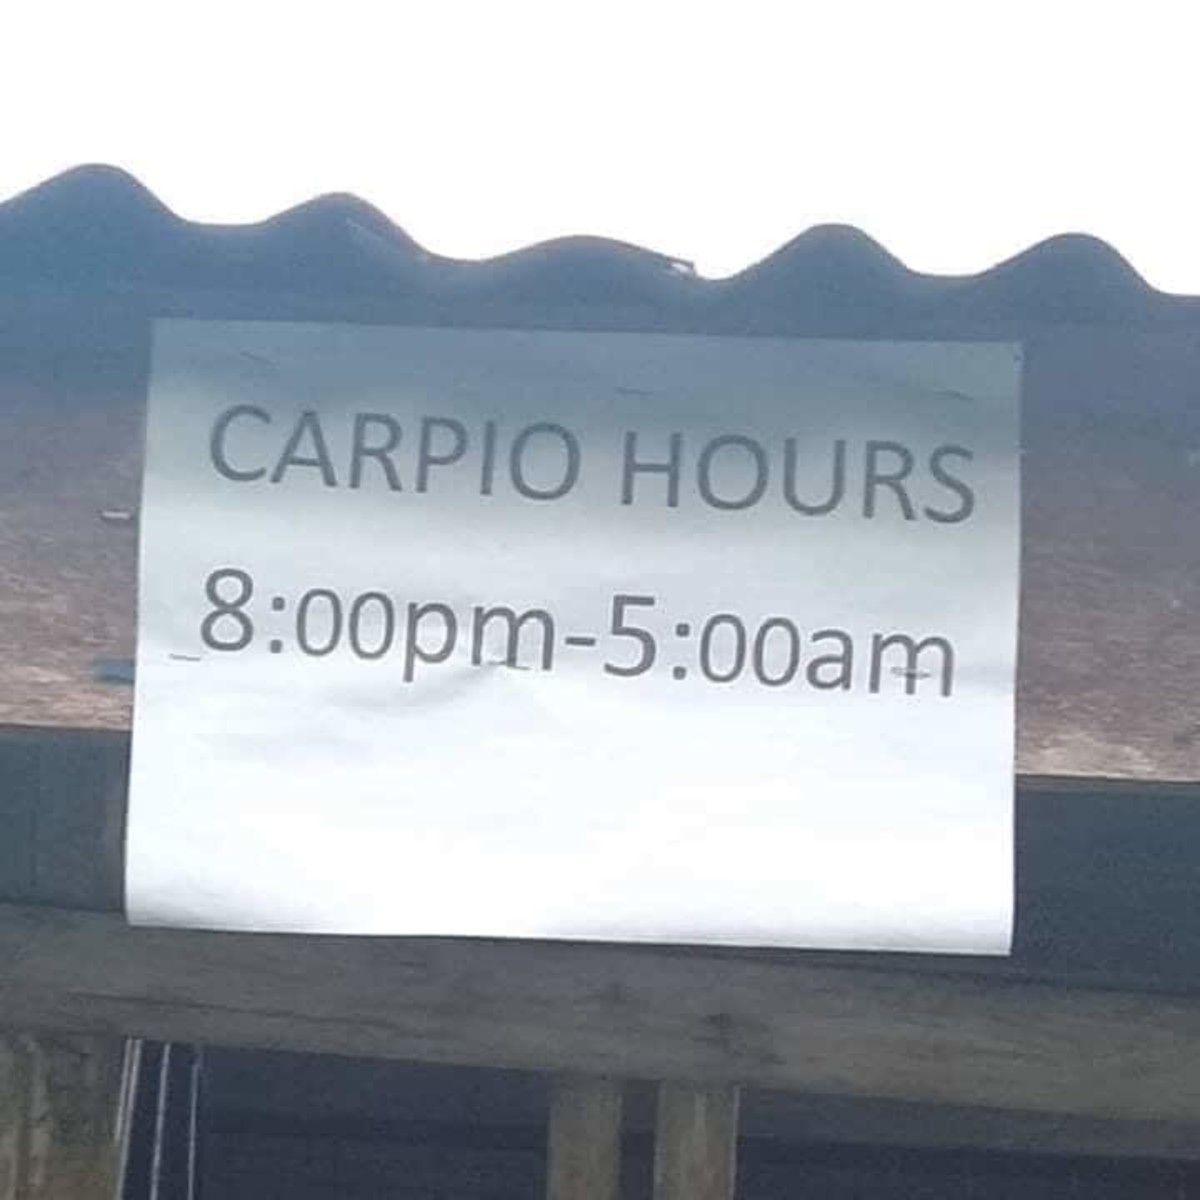 Note to self: Use curfew hours to brush up on spelling.